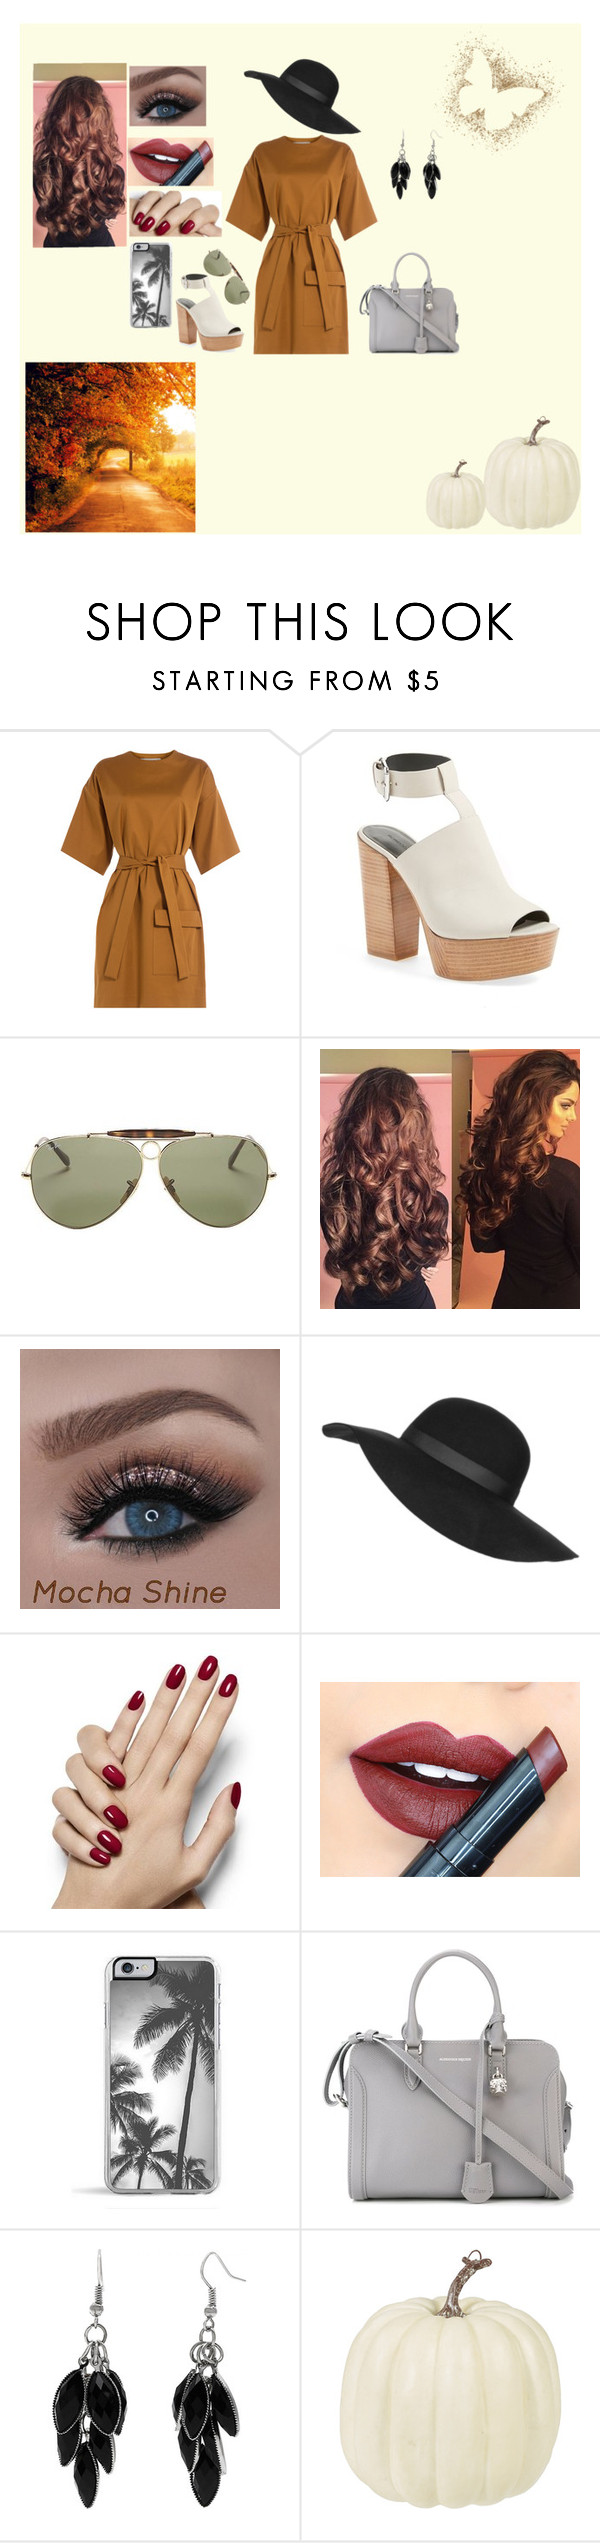 """""""Fall Outfit"""" by alexis-renteria2249 on Polyvore featuring MSGM, Rebecca Minkoff, Ray-Ban, Topshop, Fiebiger, Zero Gravity, Alexander McQueen and Alexa Starr"""